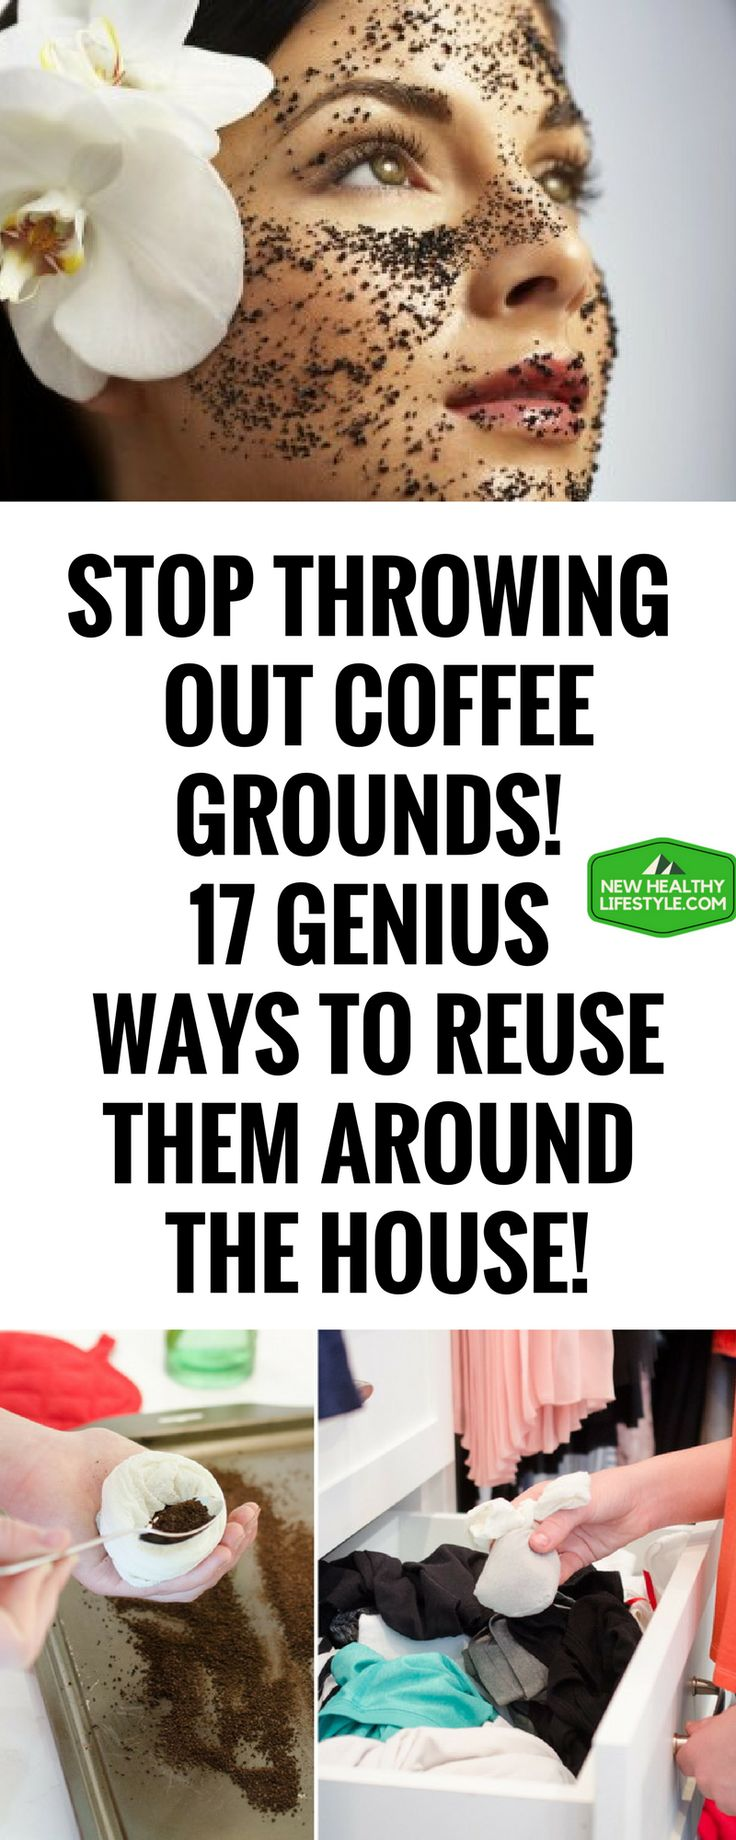 STOP THROWING OUT COFFEE GROUNDS! 17 GENIUS WAYS TO REUSE THEM AROUND THE HOUSE!{;}